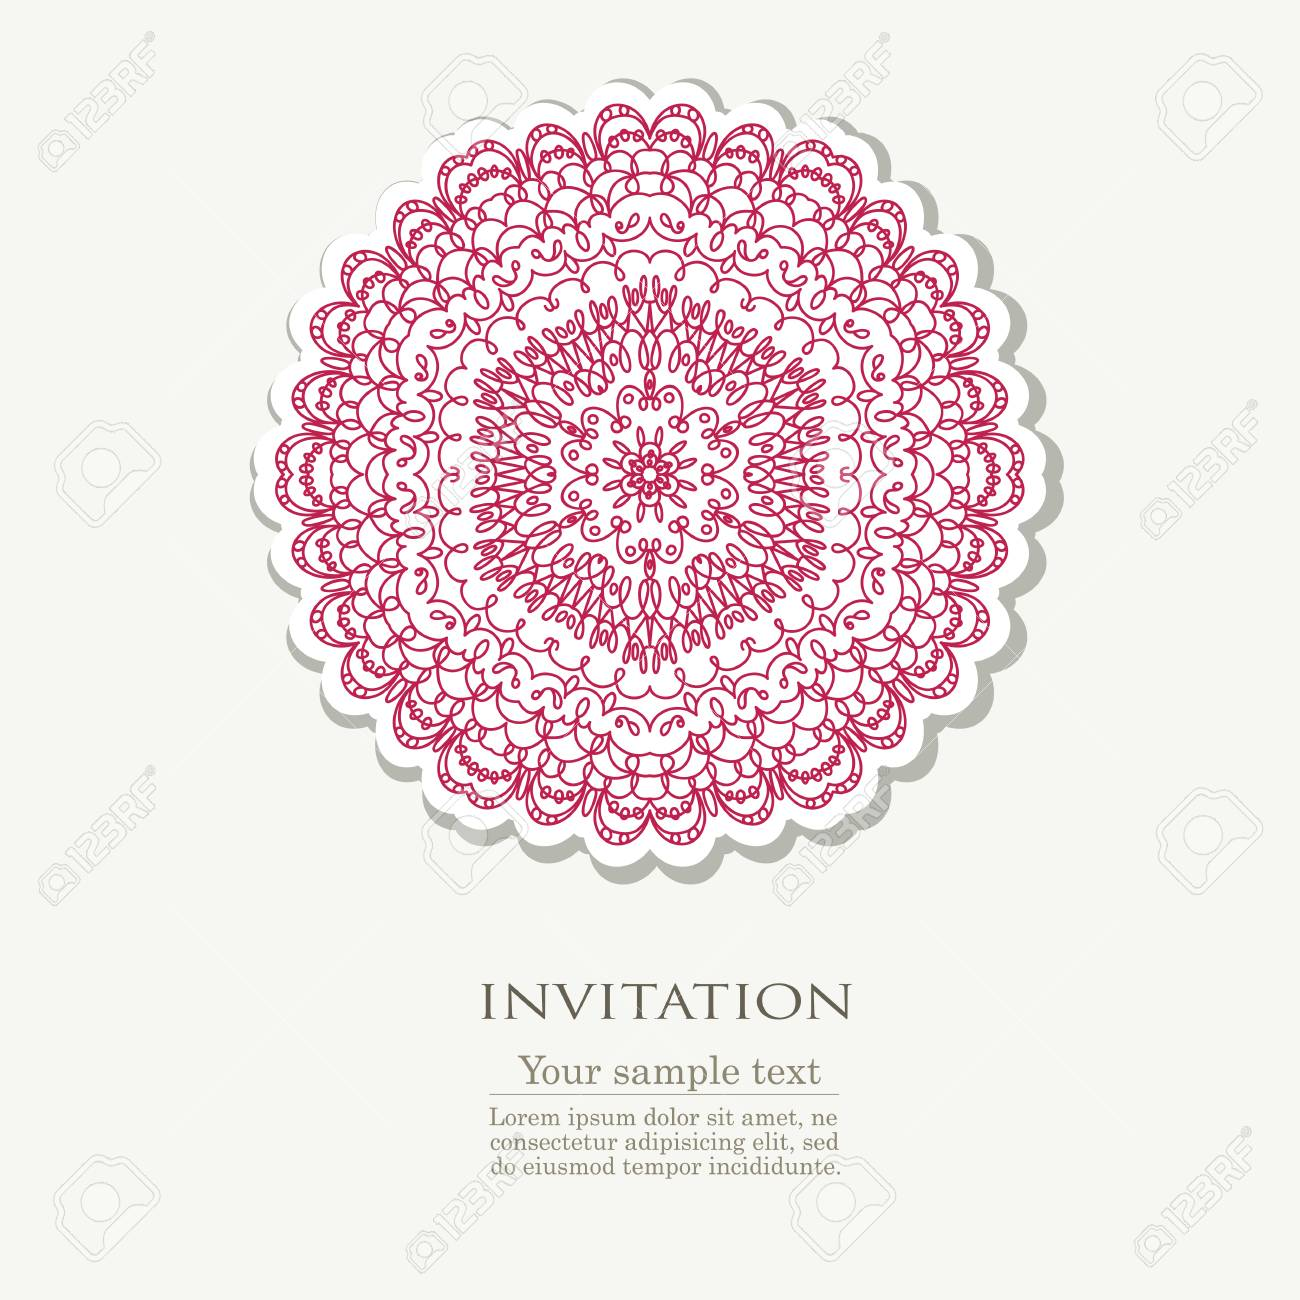 doodle colorful template with element of design vector illustration